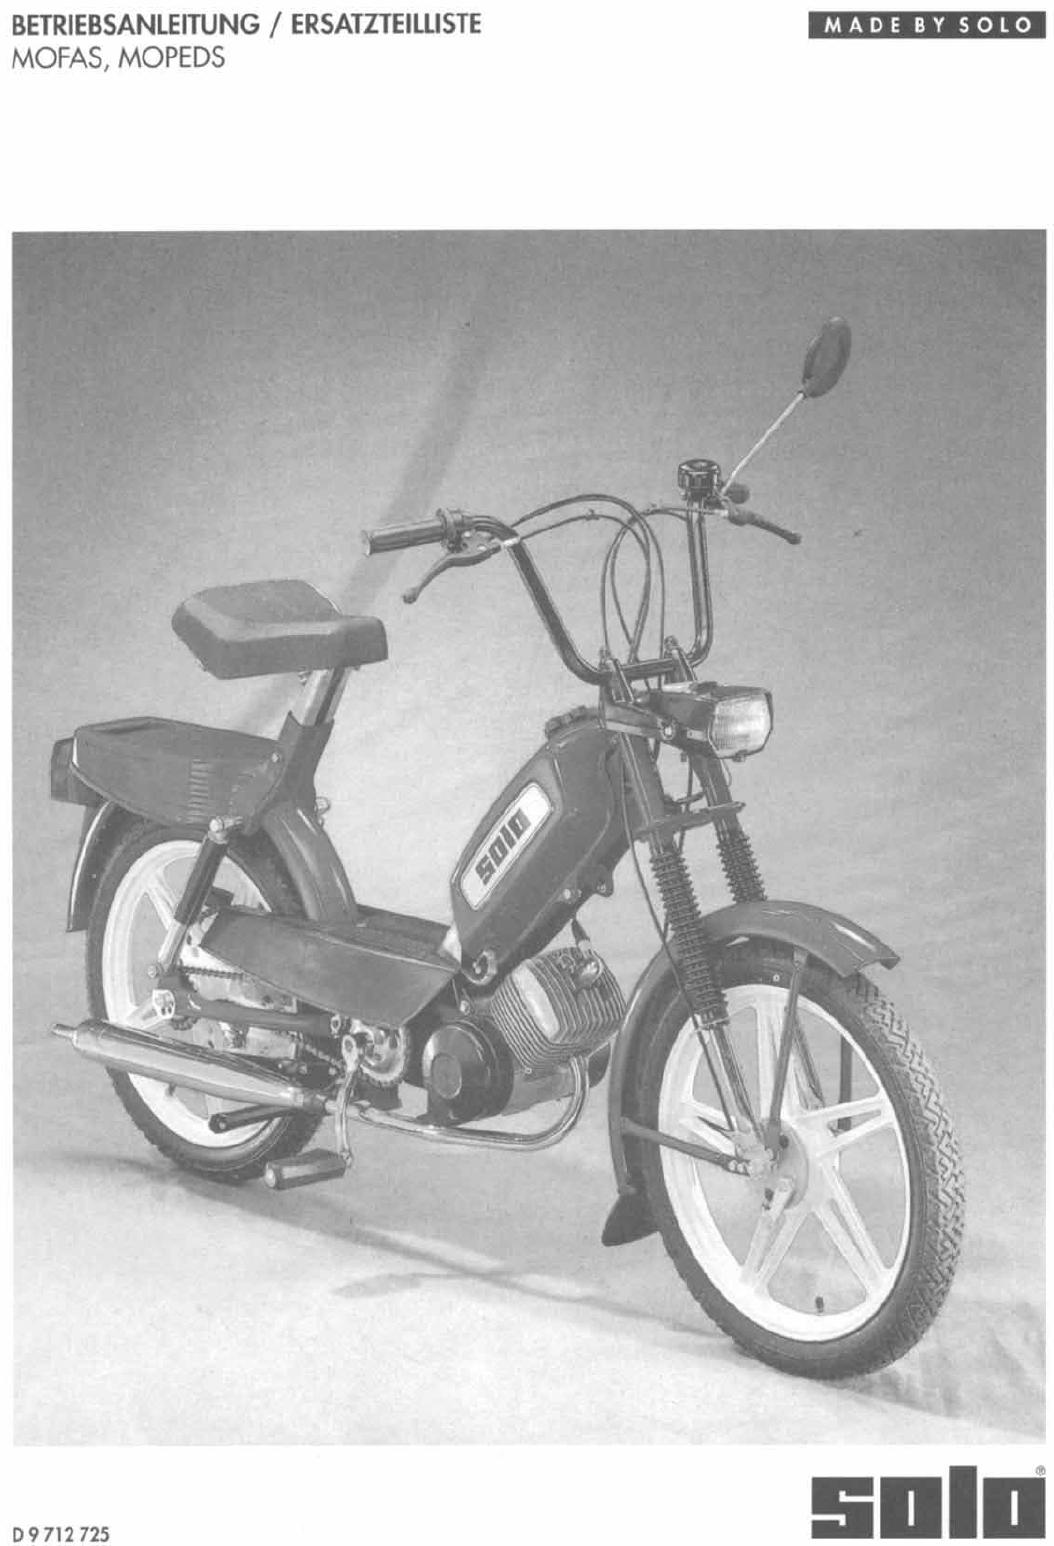 Kinetic Moped Wiring Diagram Trusted Diagrams 1954 Allstate Scooter Similiar Parts Manual Keywords Electric Bike